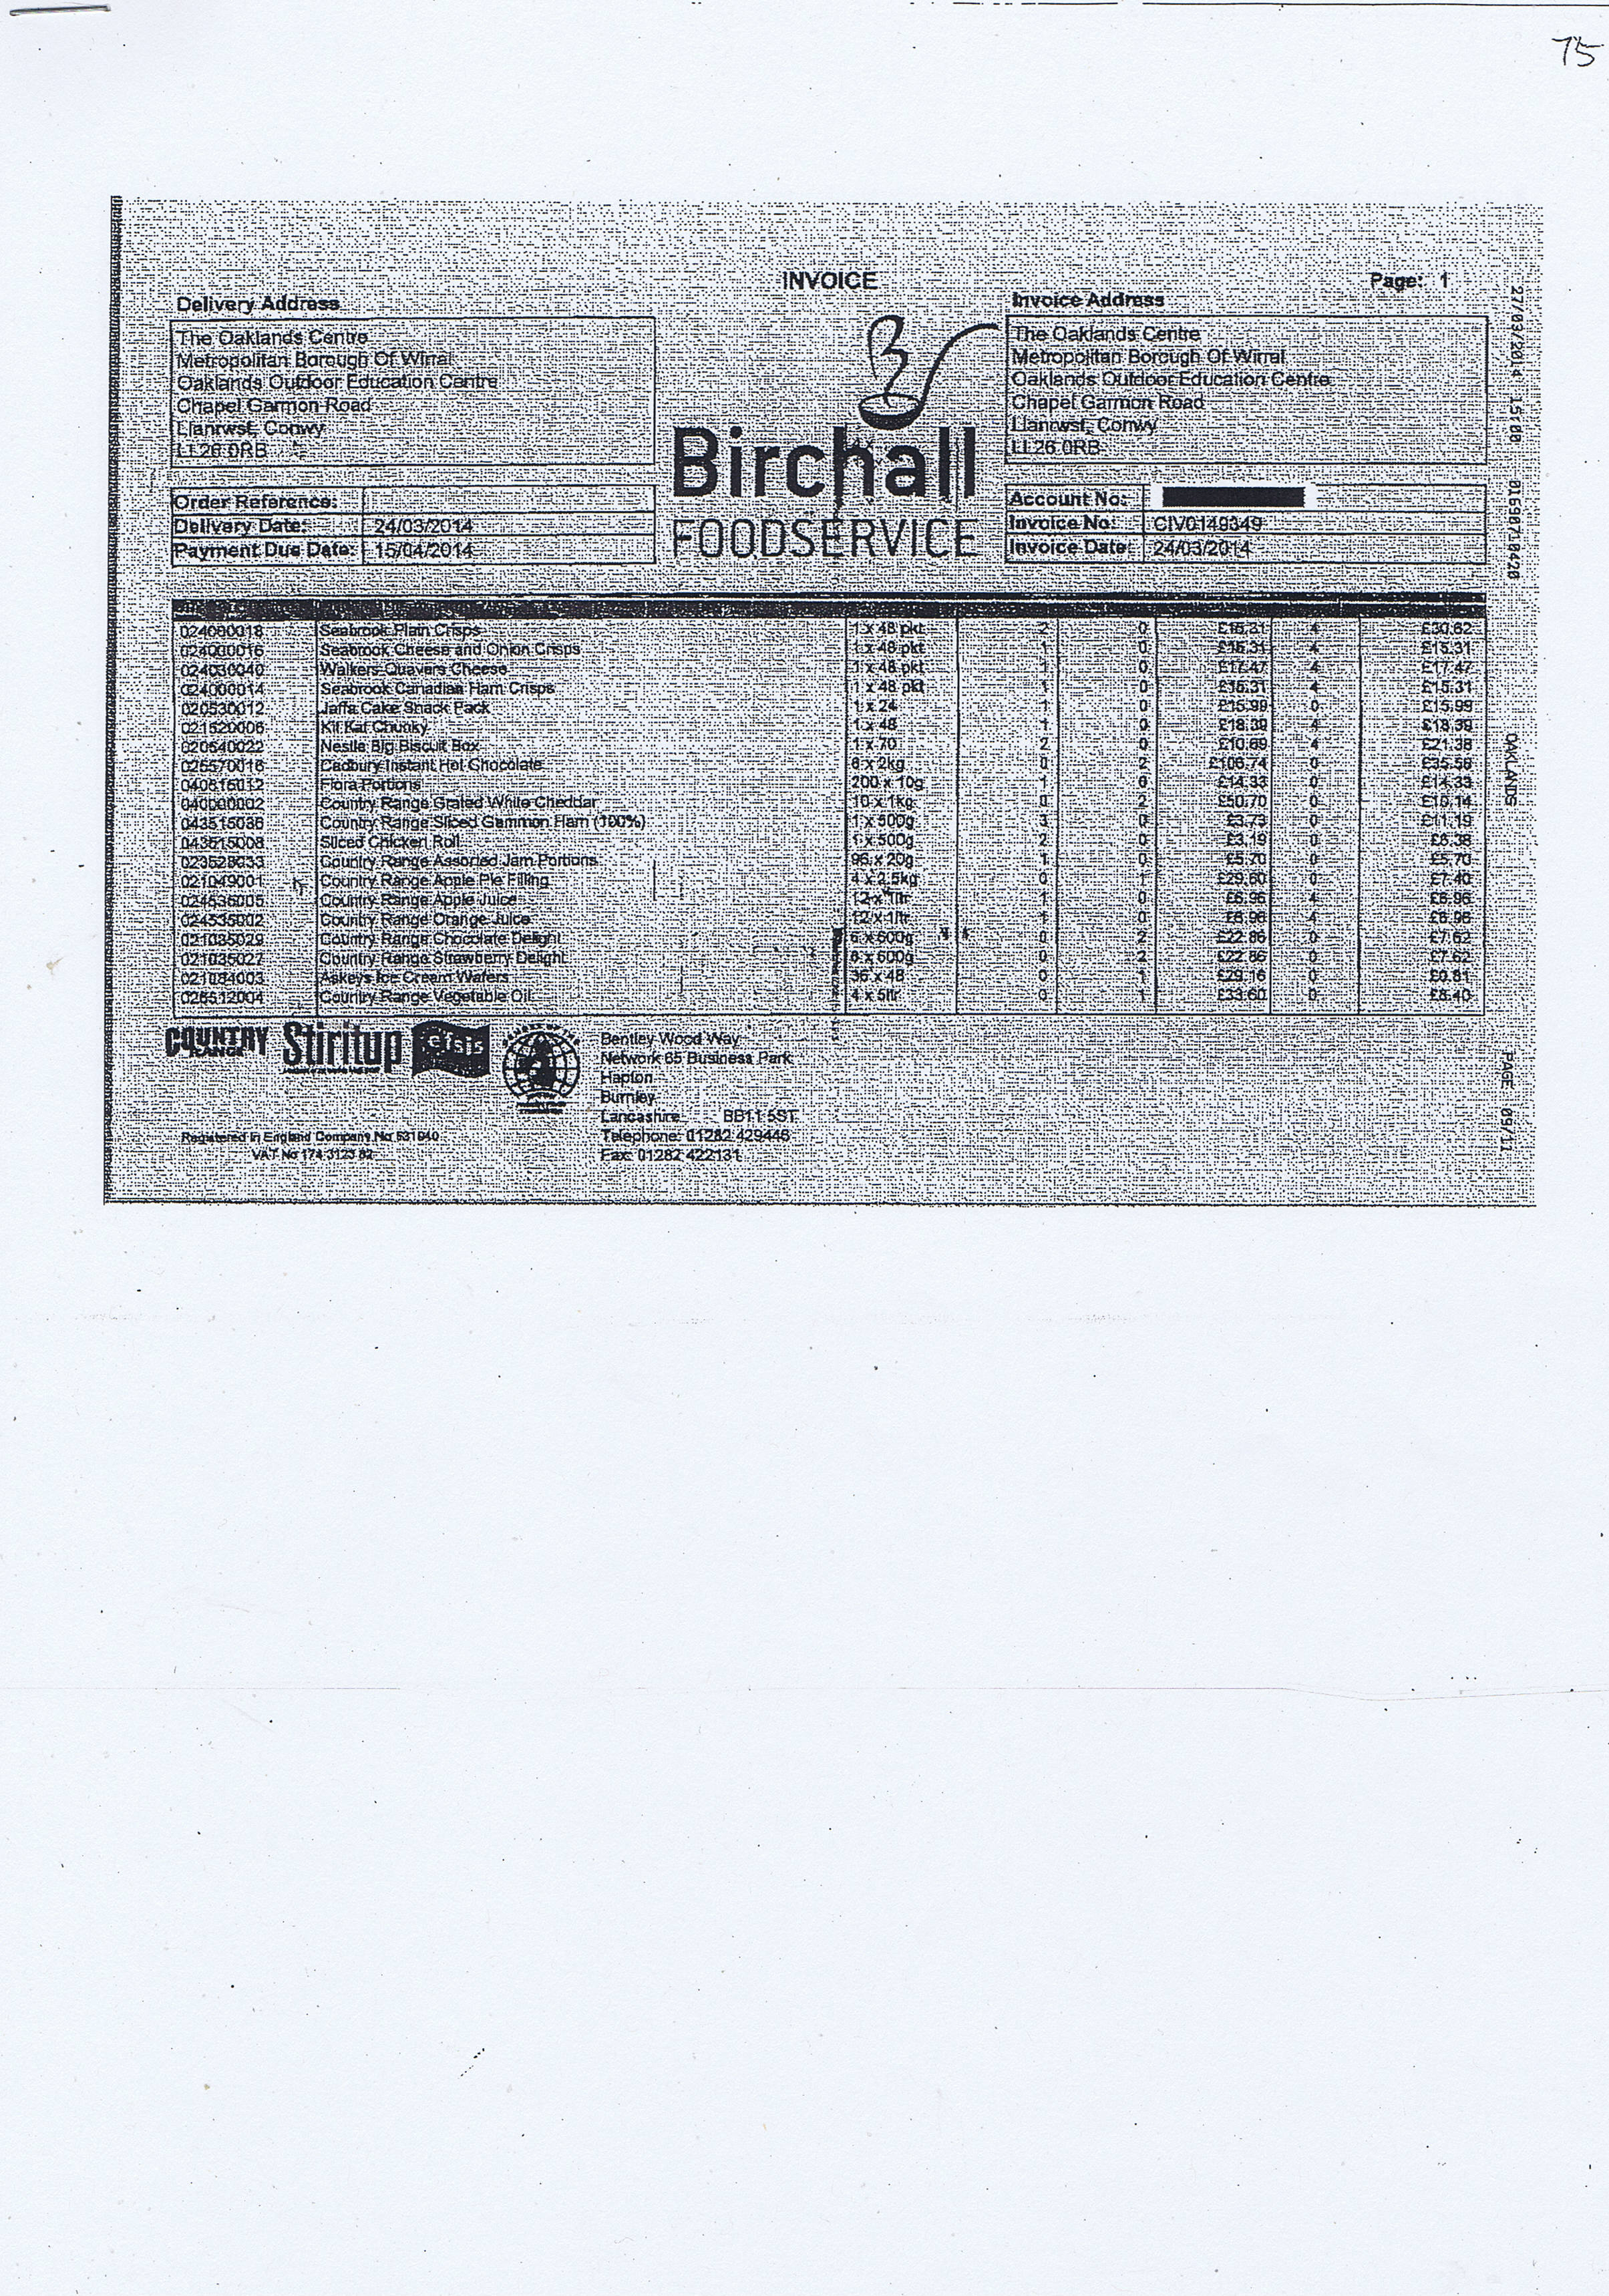 Wirral Council invoice 75 Birchall Foodservice £568.94 page 1 of 3